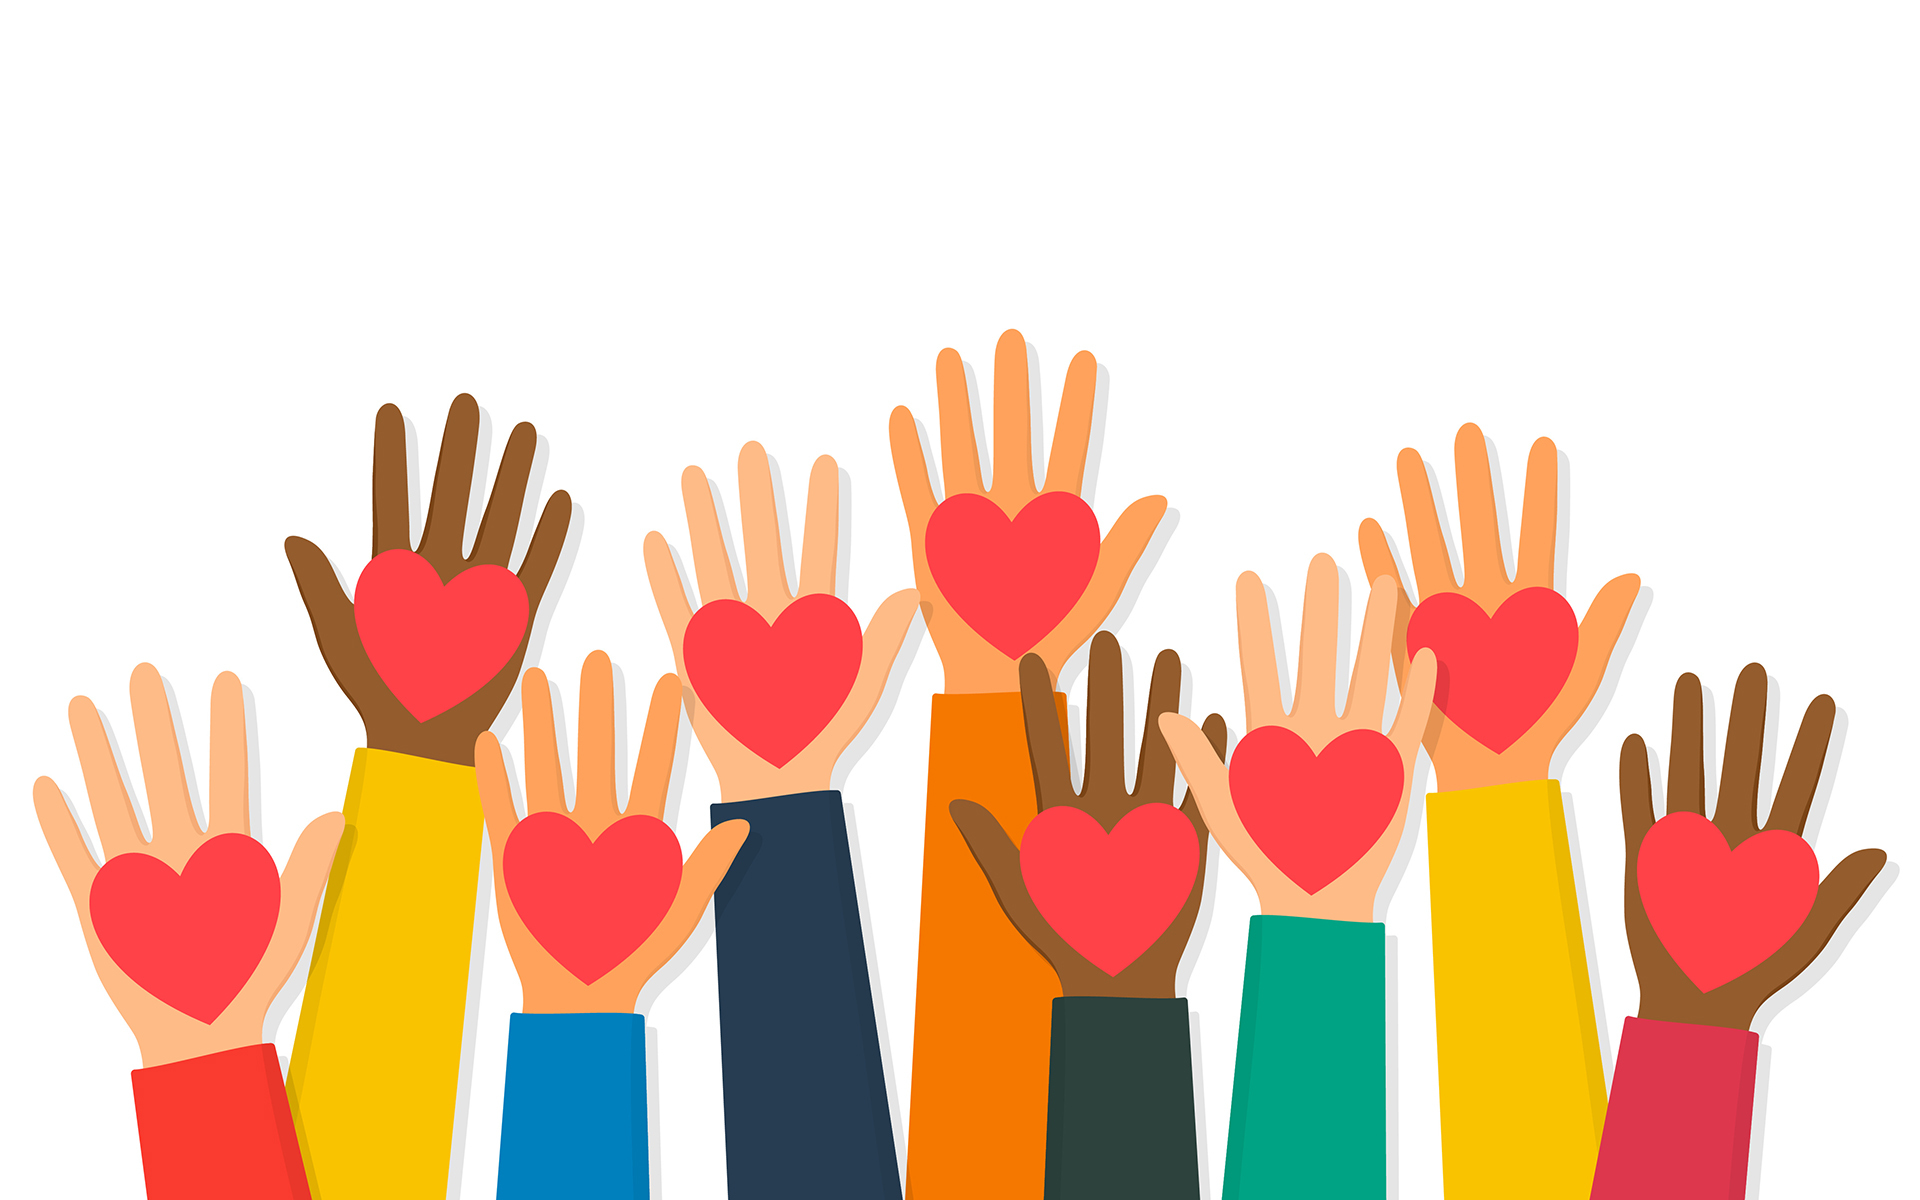 Savor Your Values: Finding Strength In Compassion. Hands holding hearts image